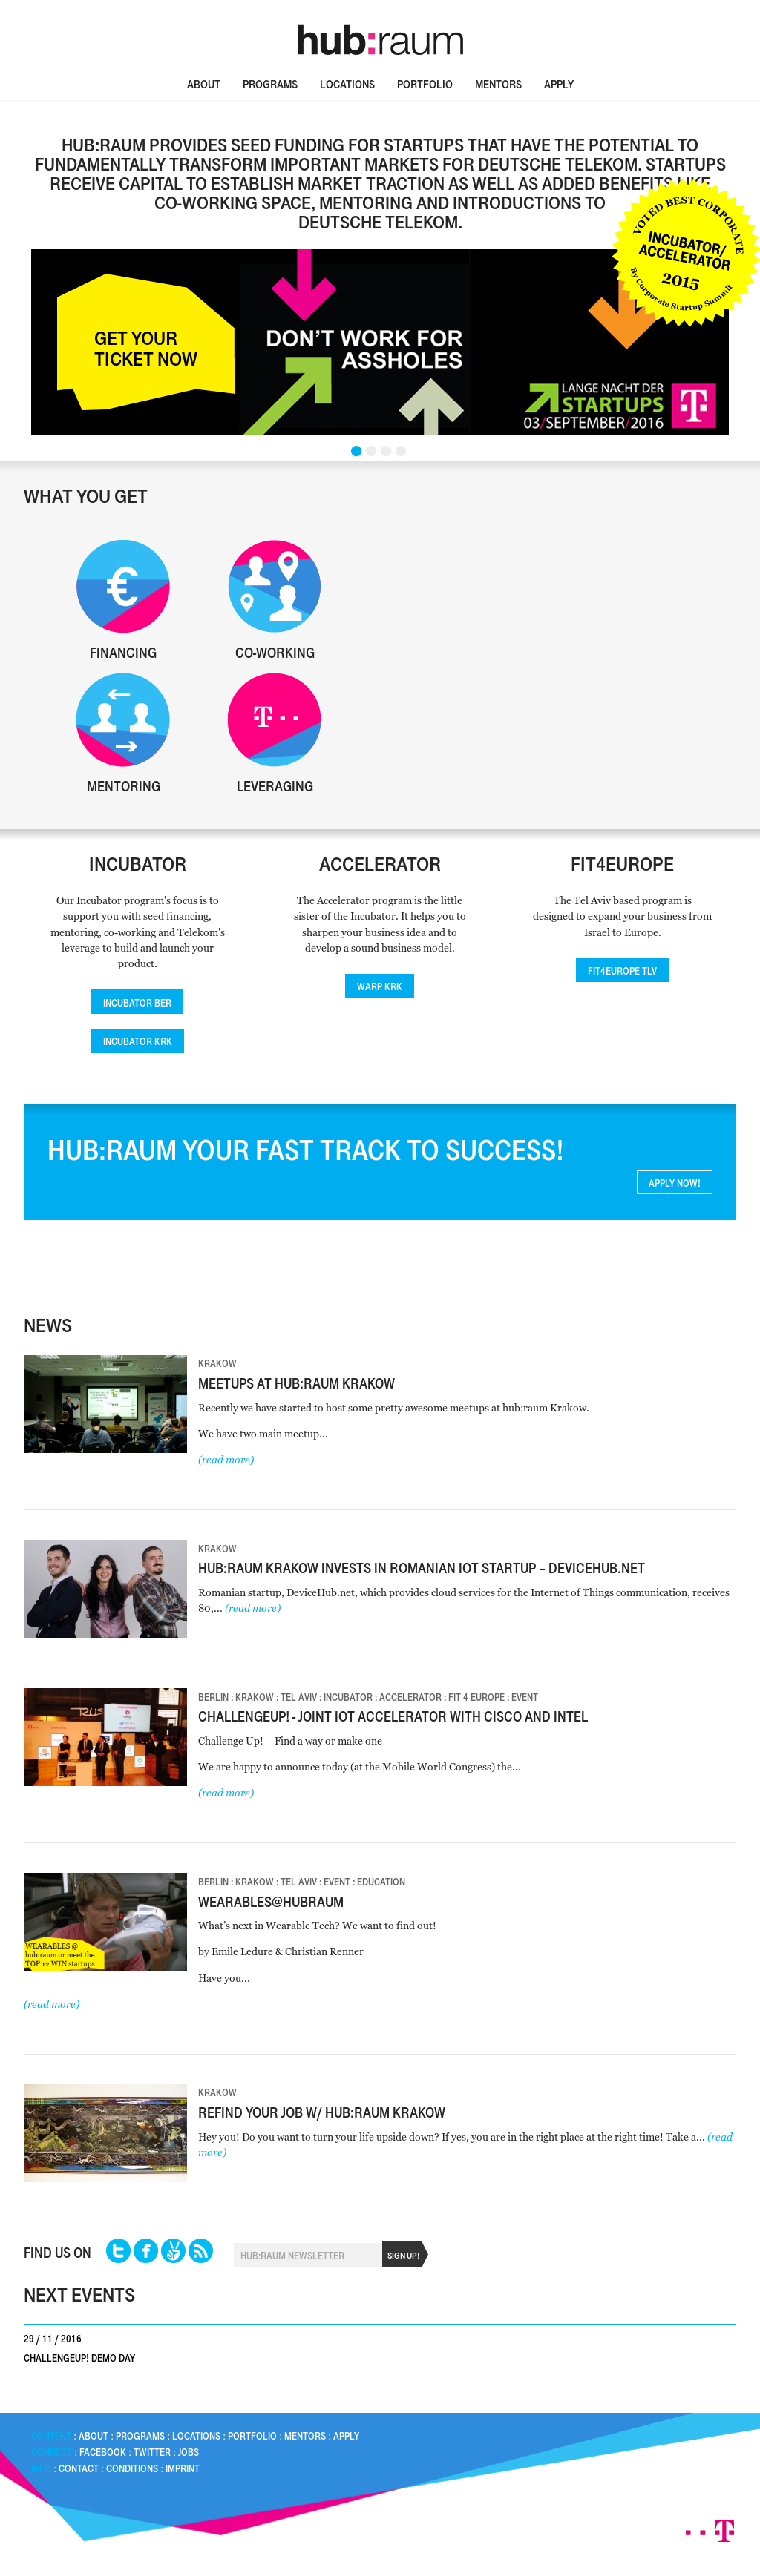 Hub:raum Competitors, Revenue and Employees - Owler Company